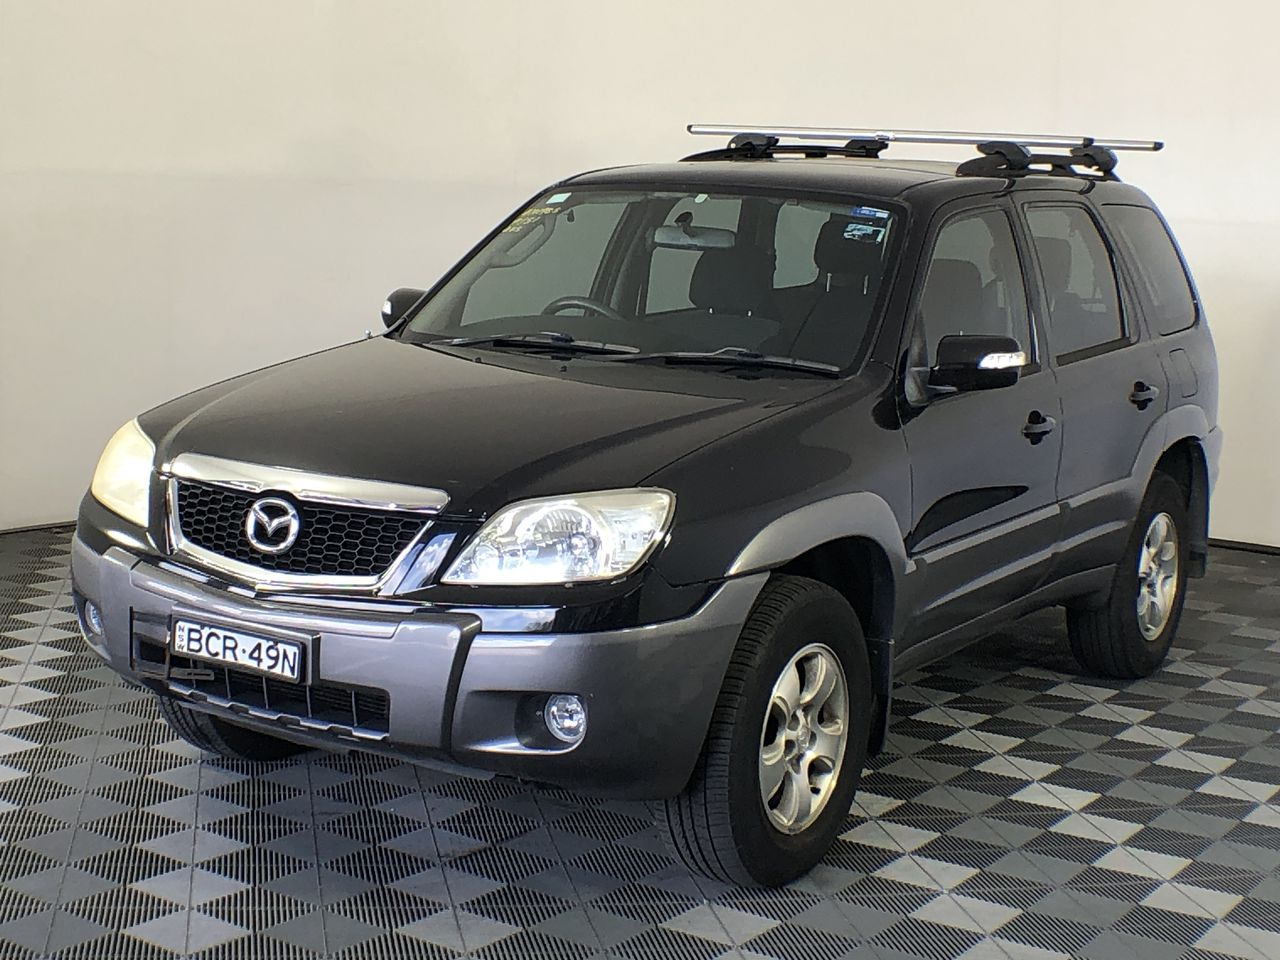 2006 Mazda Tribute V6 Automatic Wagon 90,440km